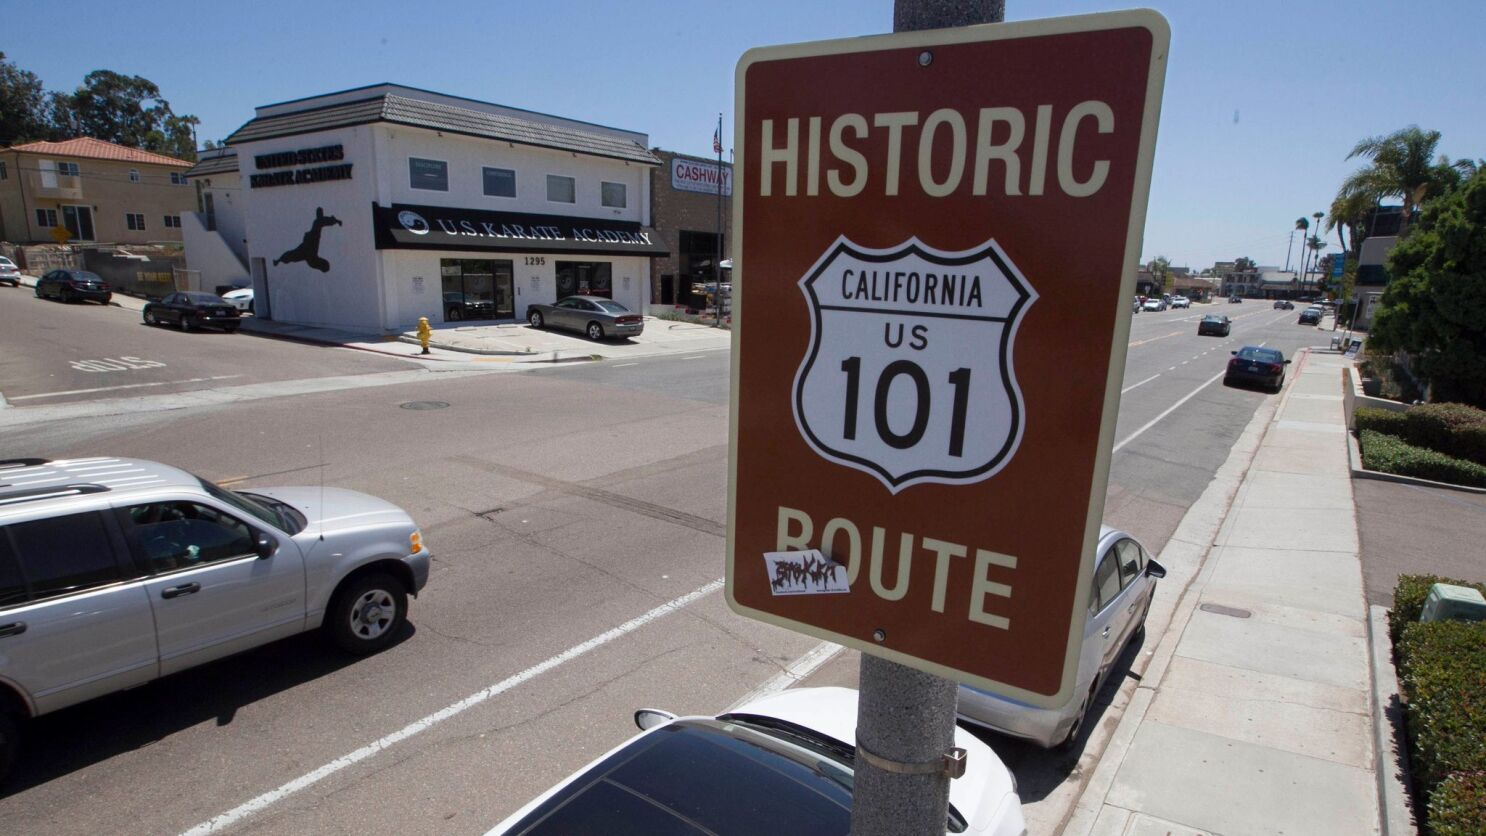 Original Highway 101, precursor to I-5, was first official